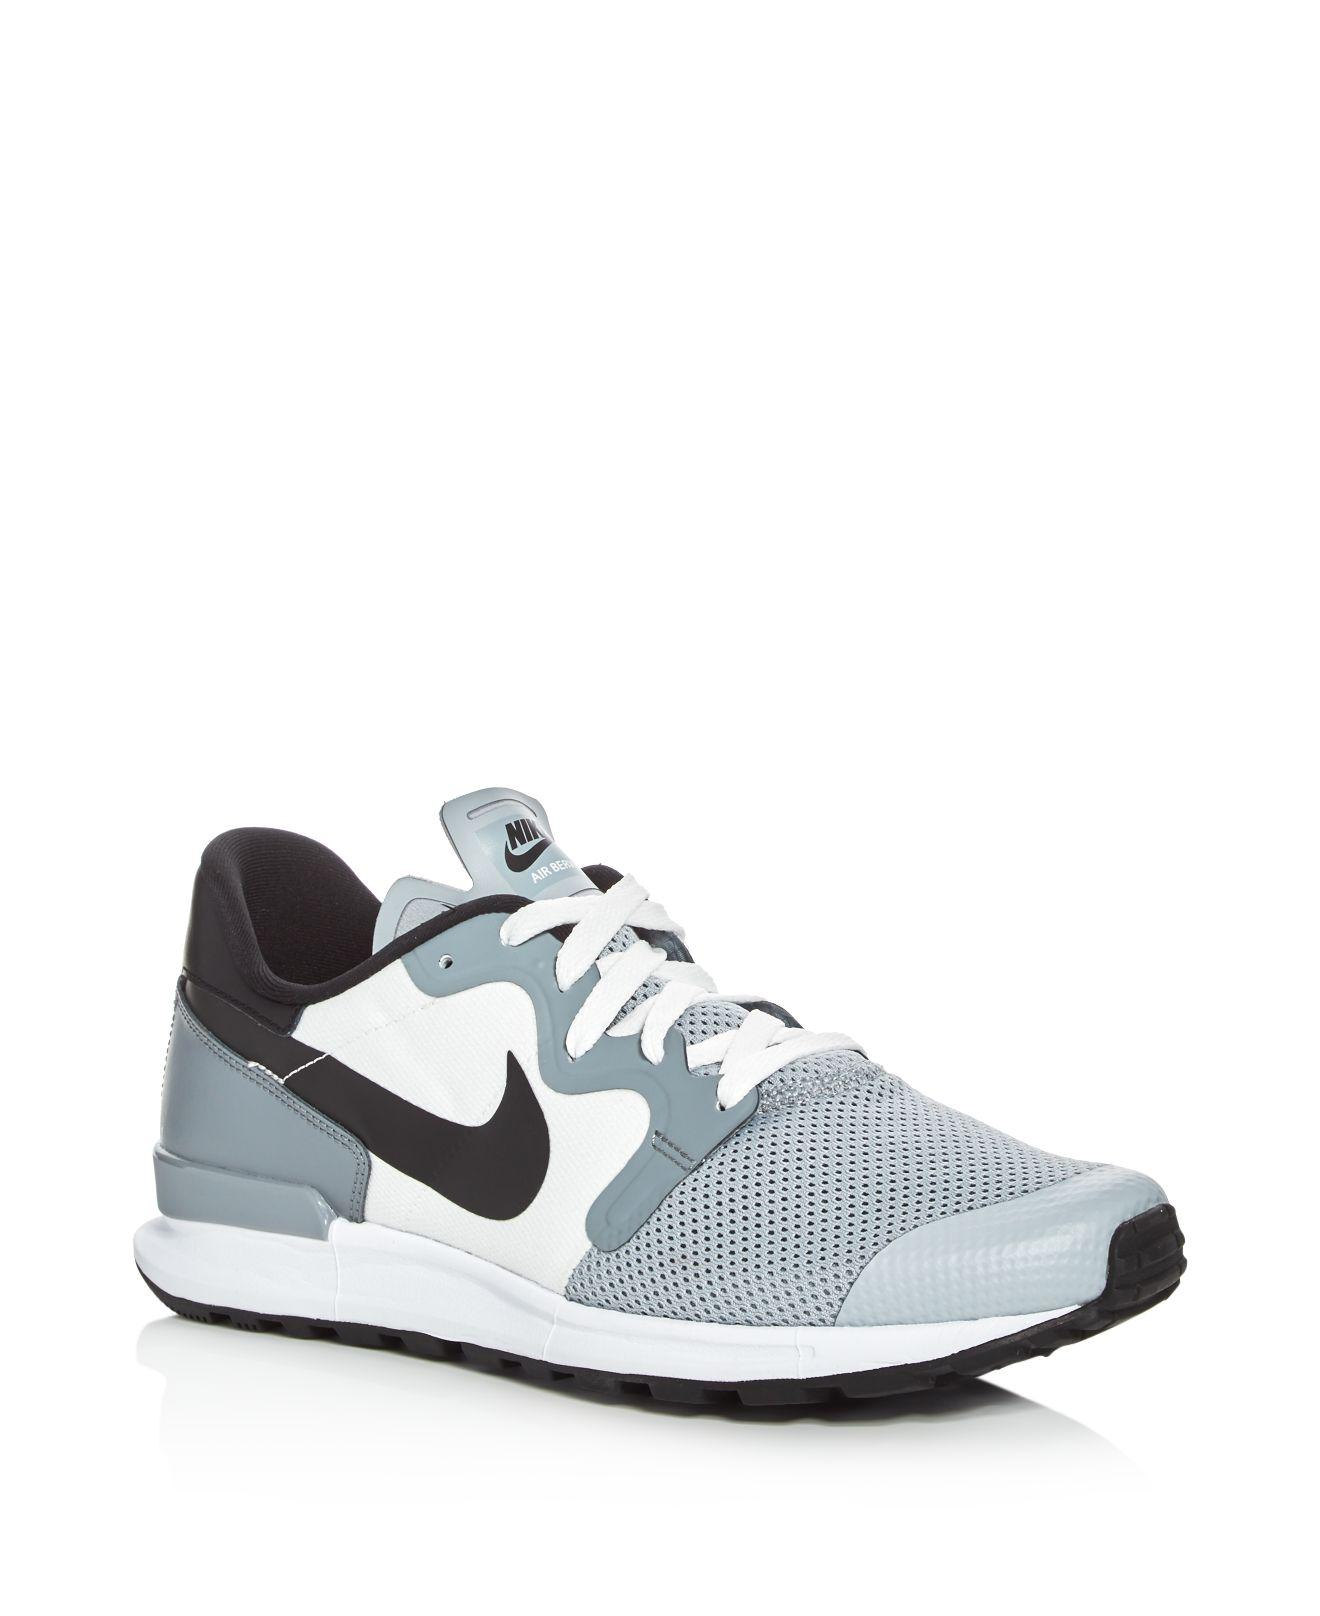 hot sale online 1da47 db785 Lyst - Nike Air Berwuda Lace Up Sneakers in Gray for Men